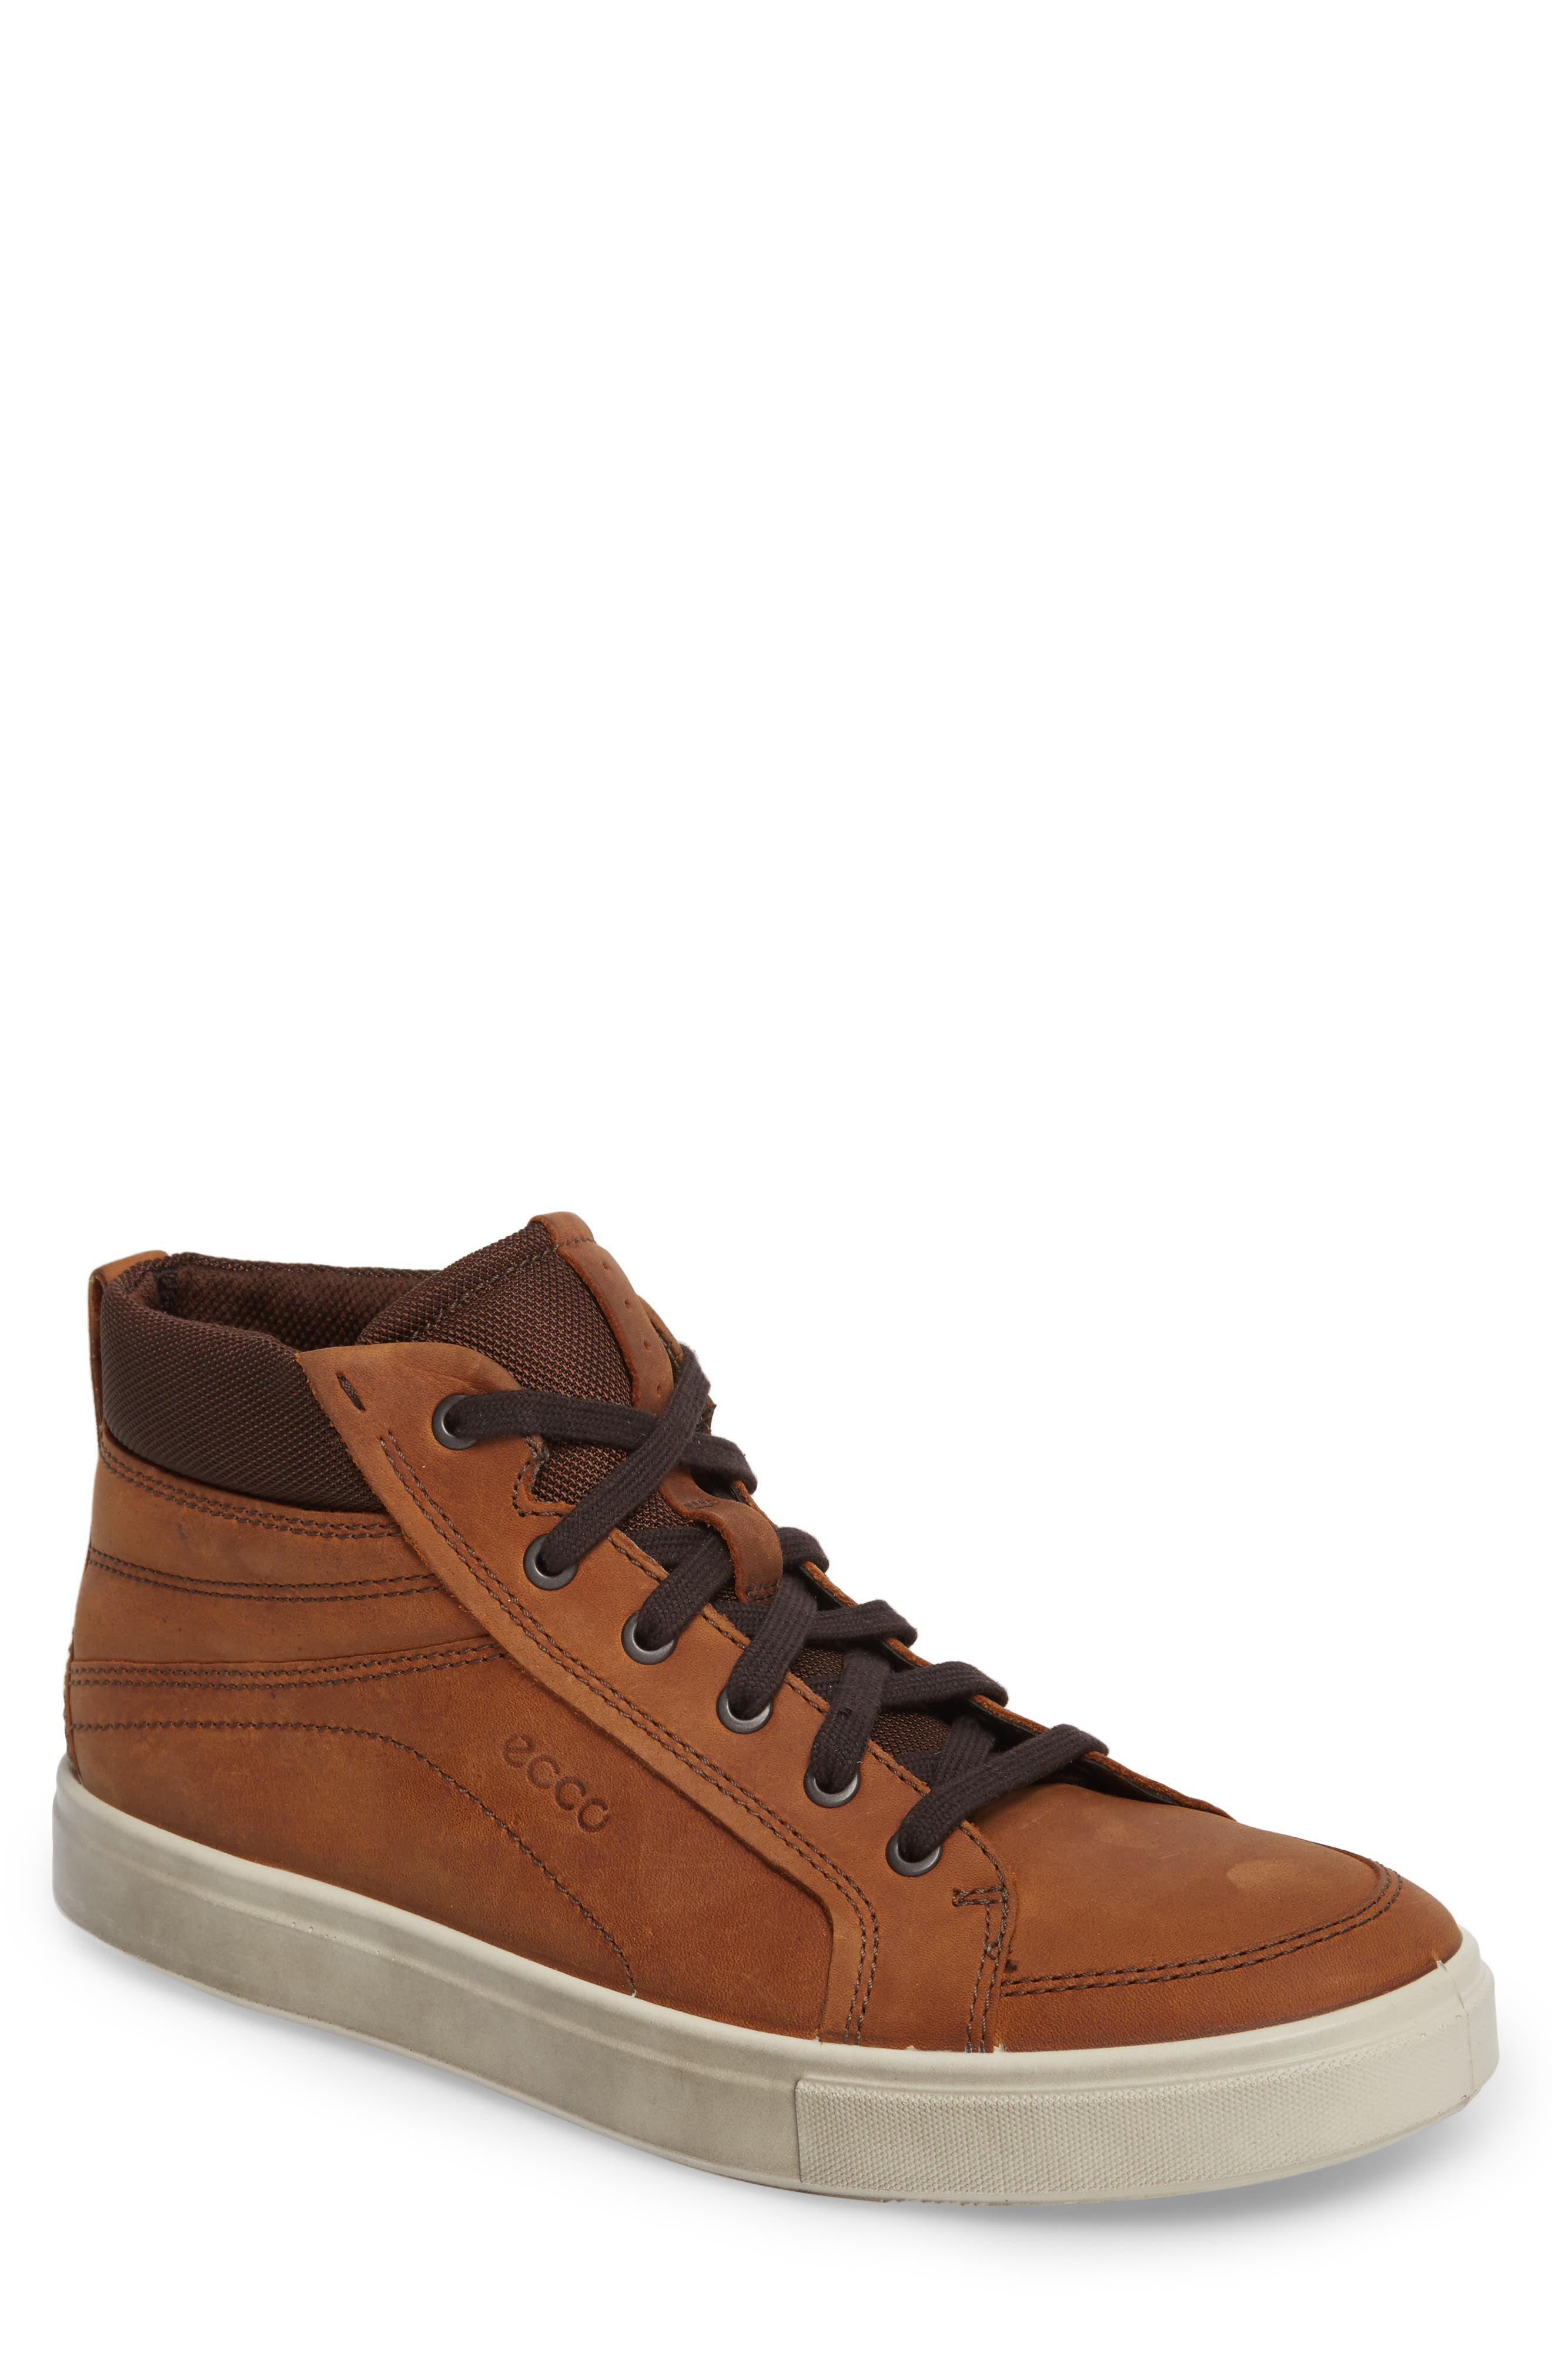 Kyle Sneaker,                             Main thumbnail 1, color,                             Amber Leather